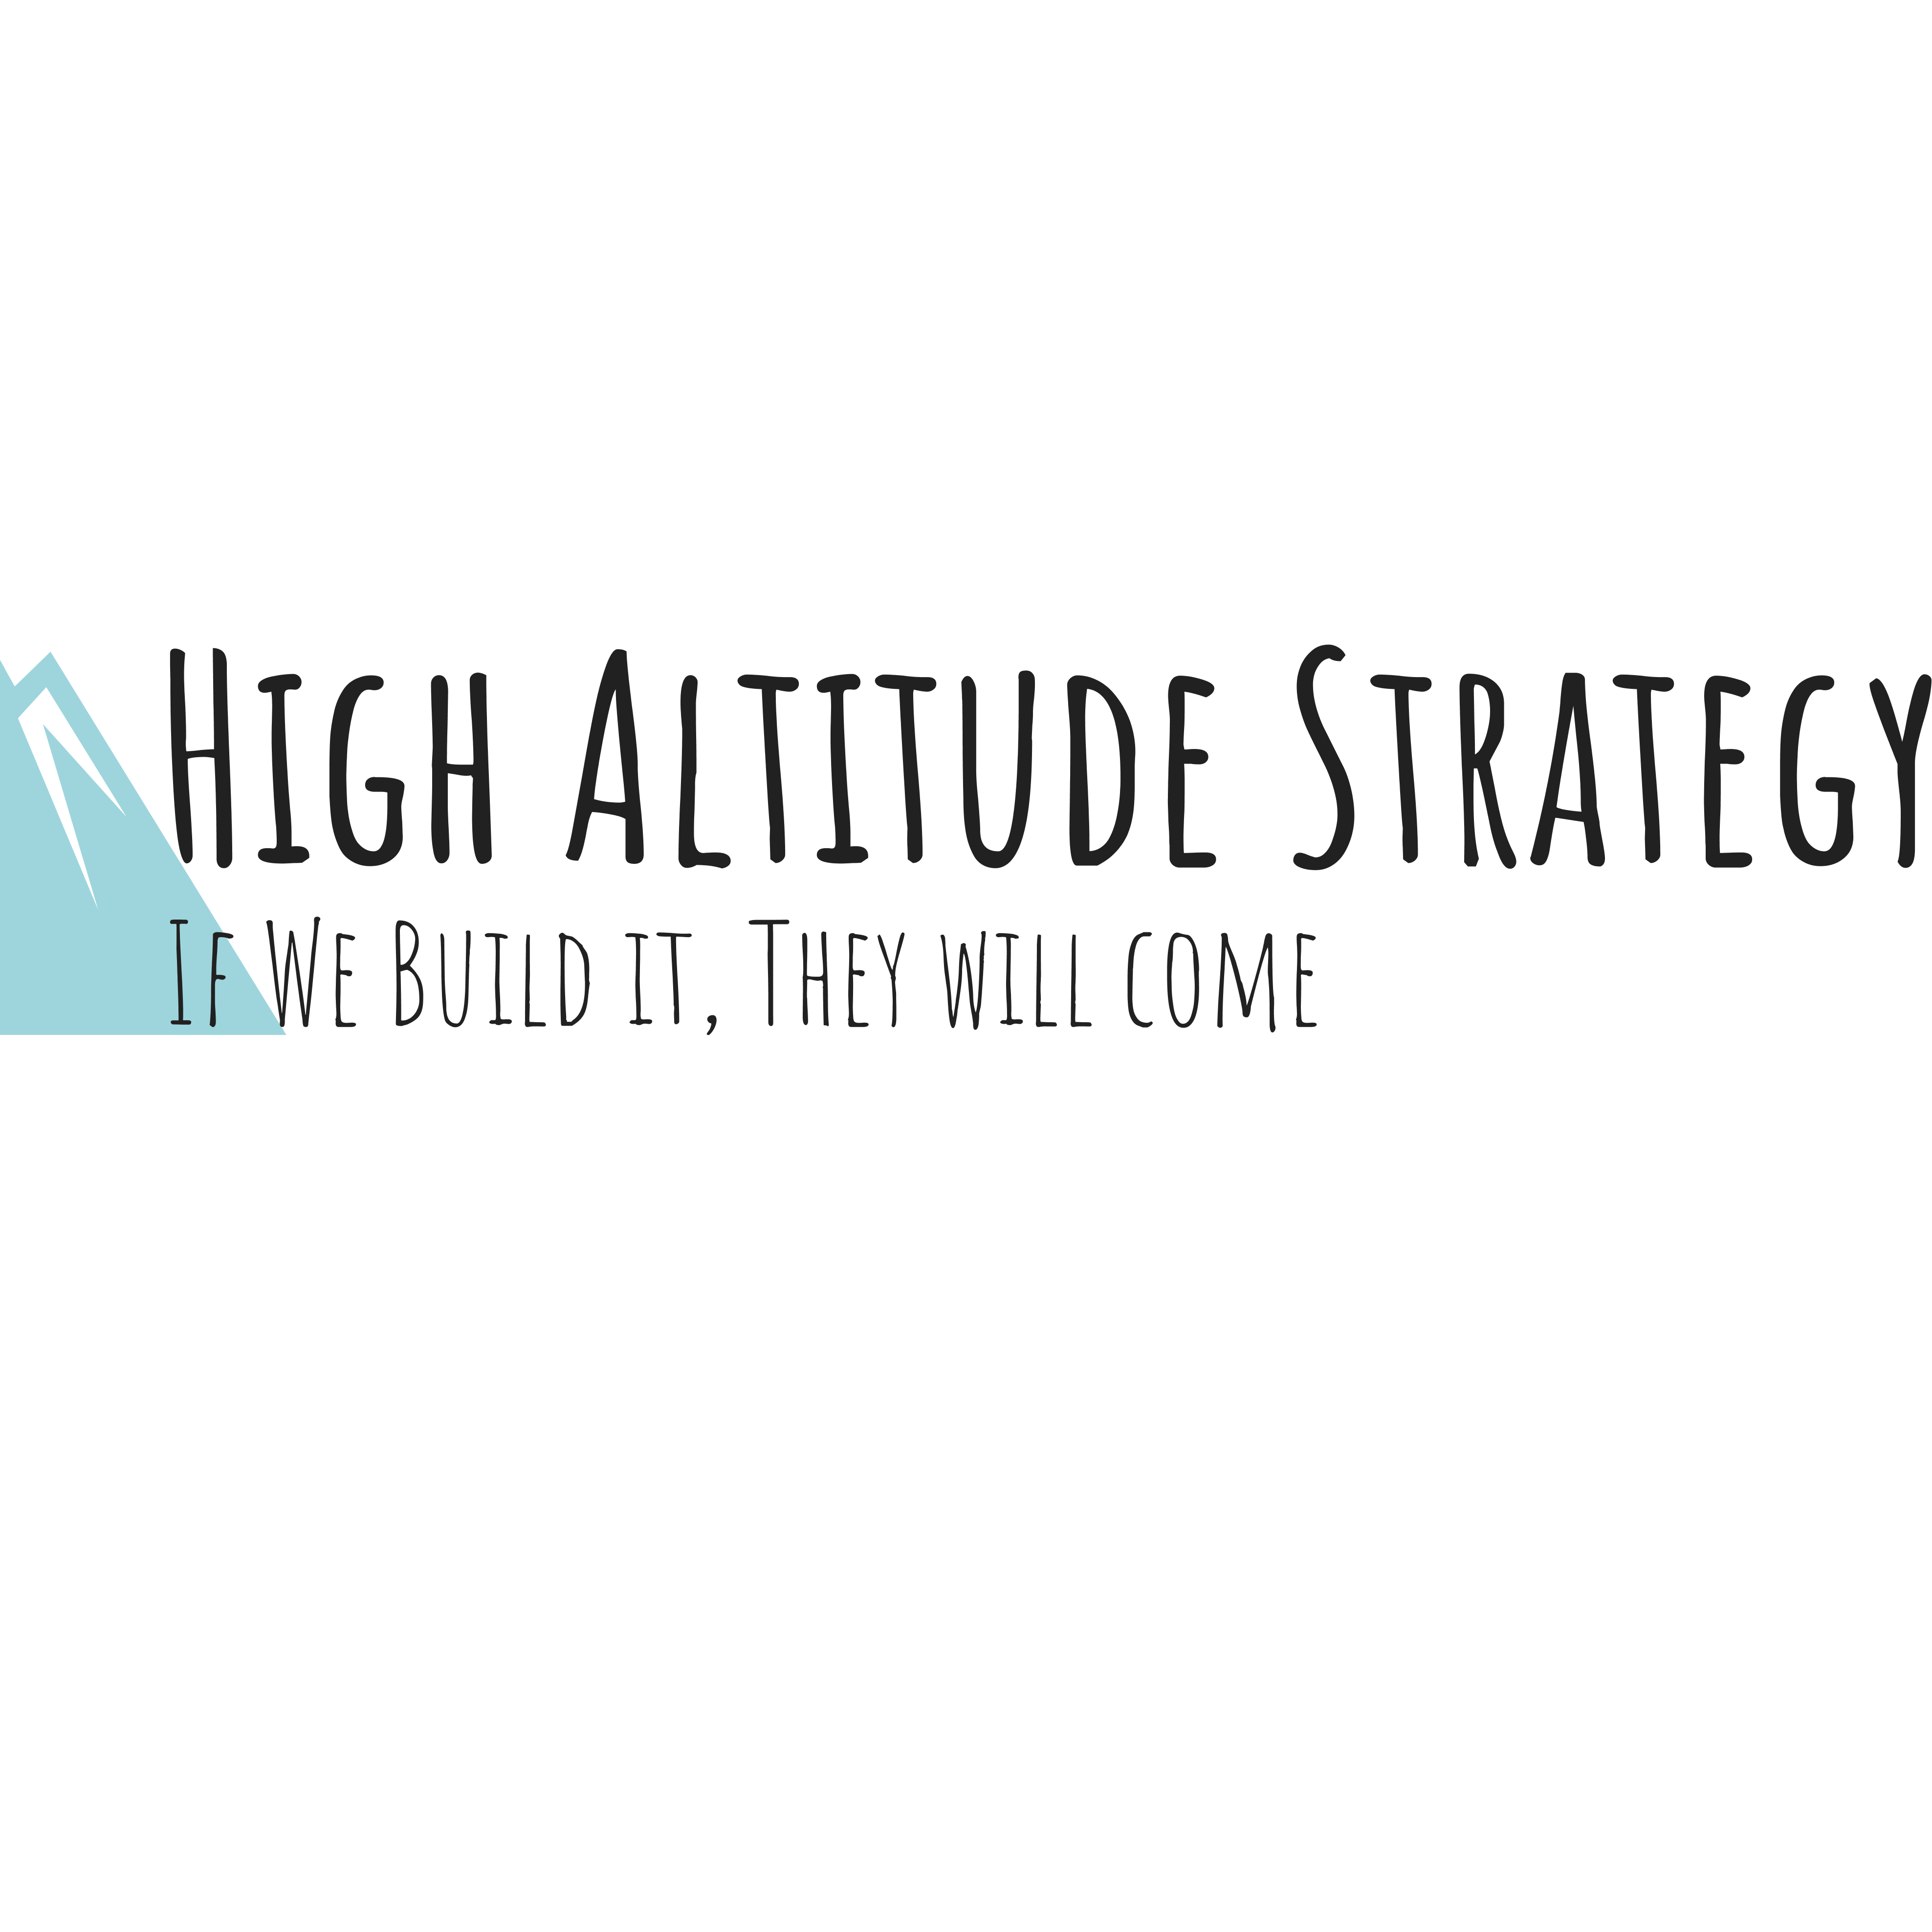 High Altitude Strategy - chesterfield, MO - Website Design Services